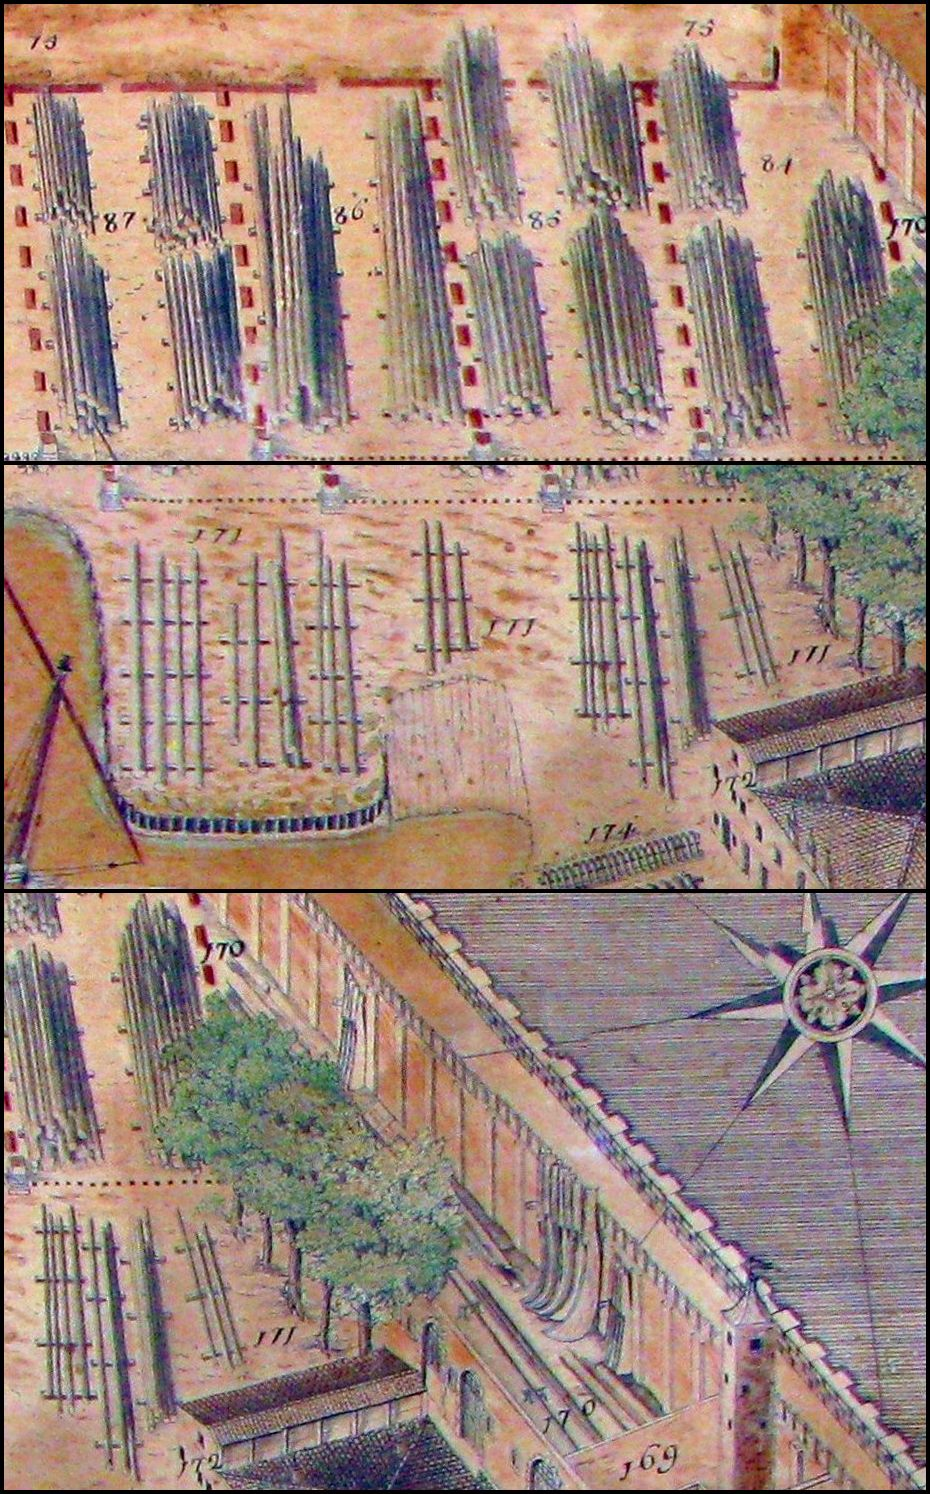 Arsenal of Venice Masts Stations